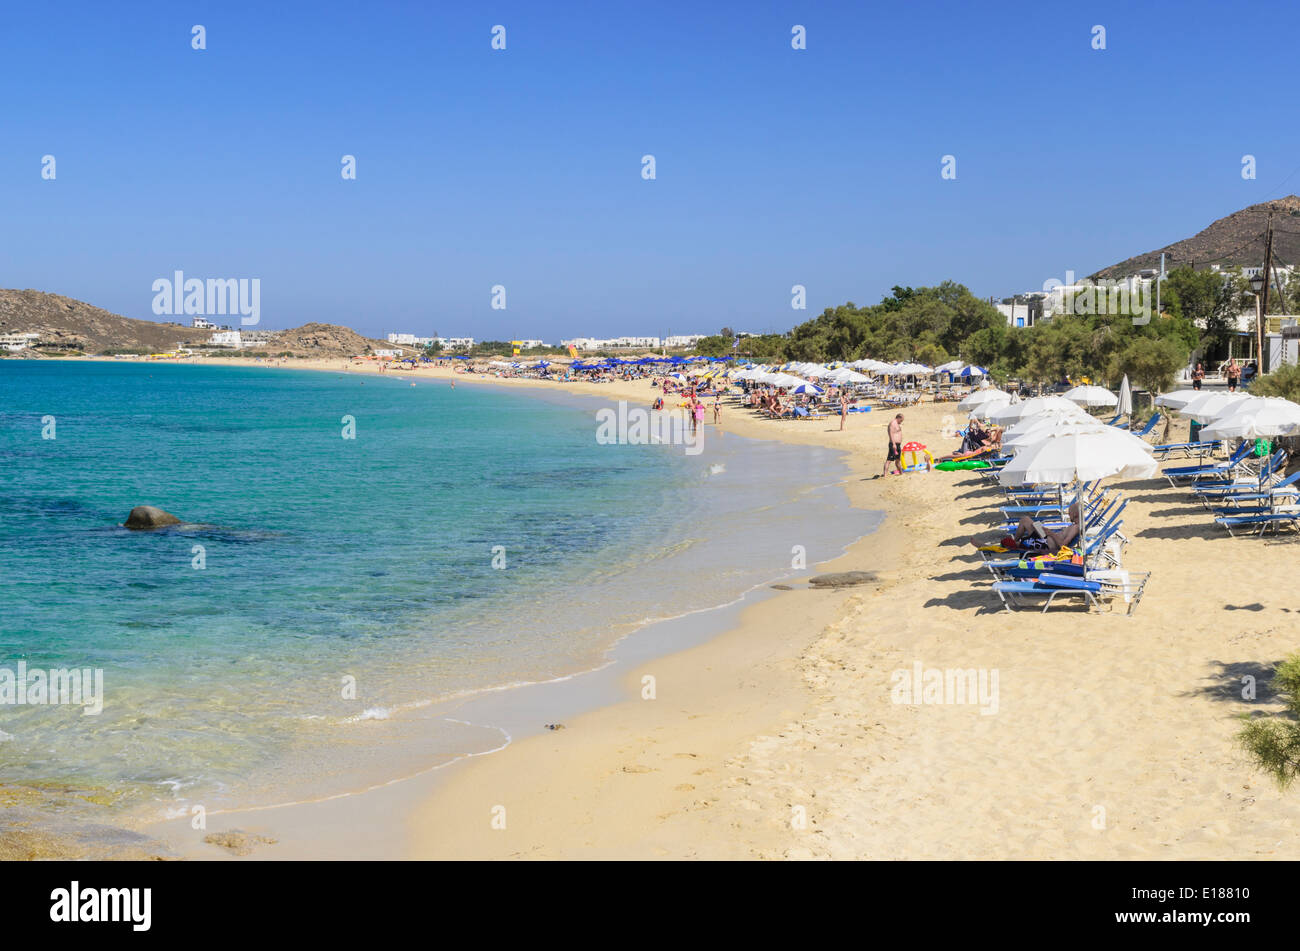 Agios Prokopios Beach on Naxos Island, Cyclades, Greece Stock Photo